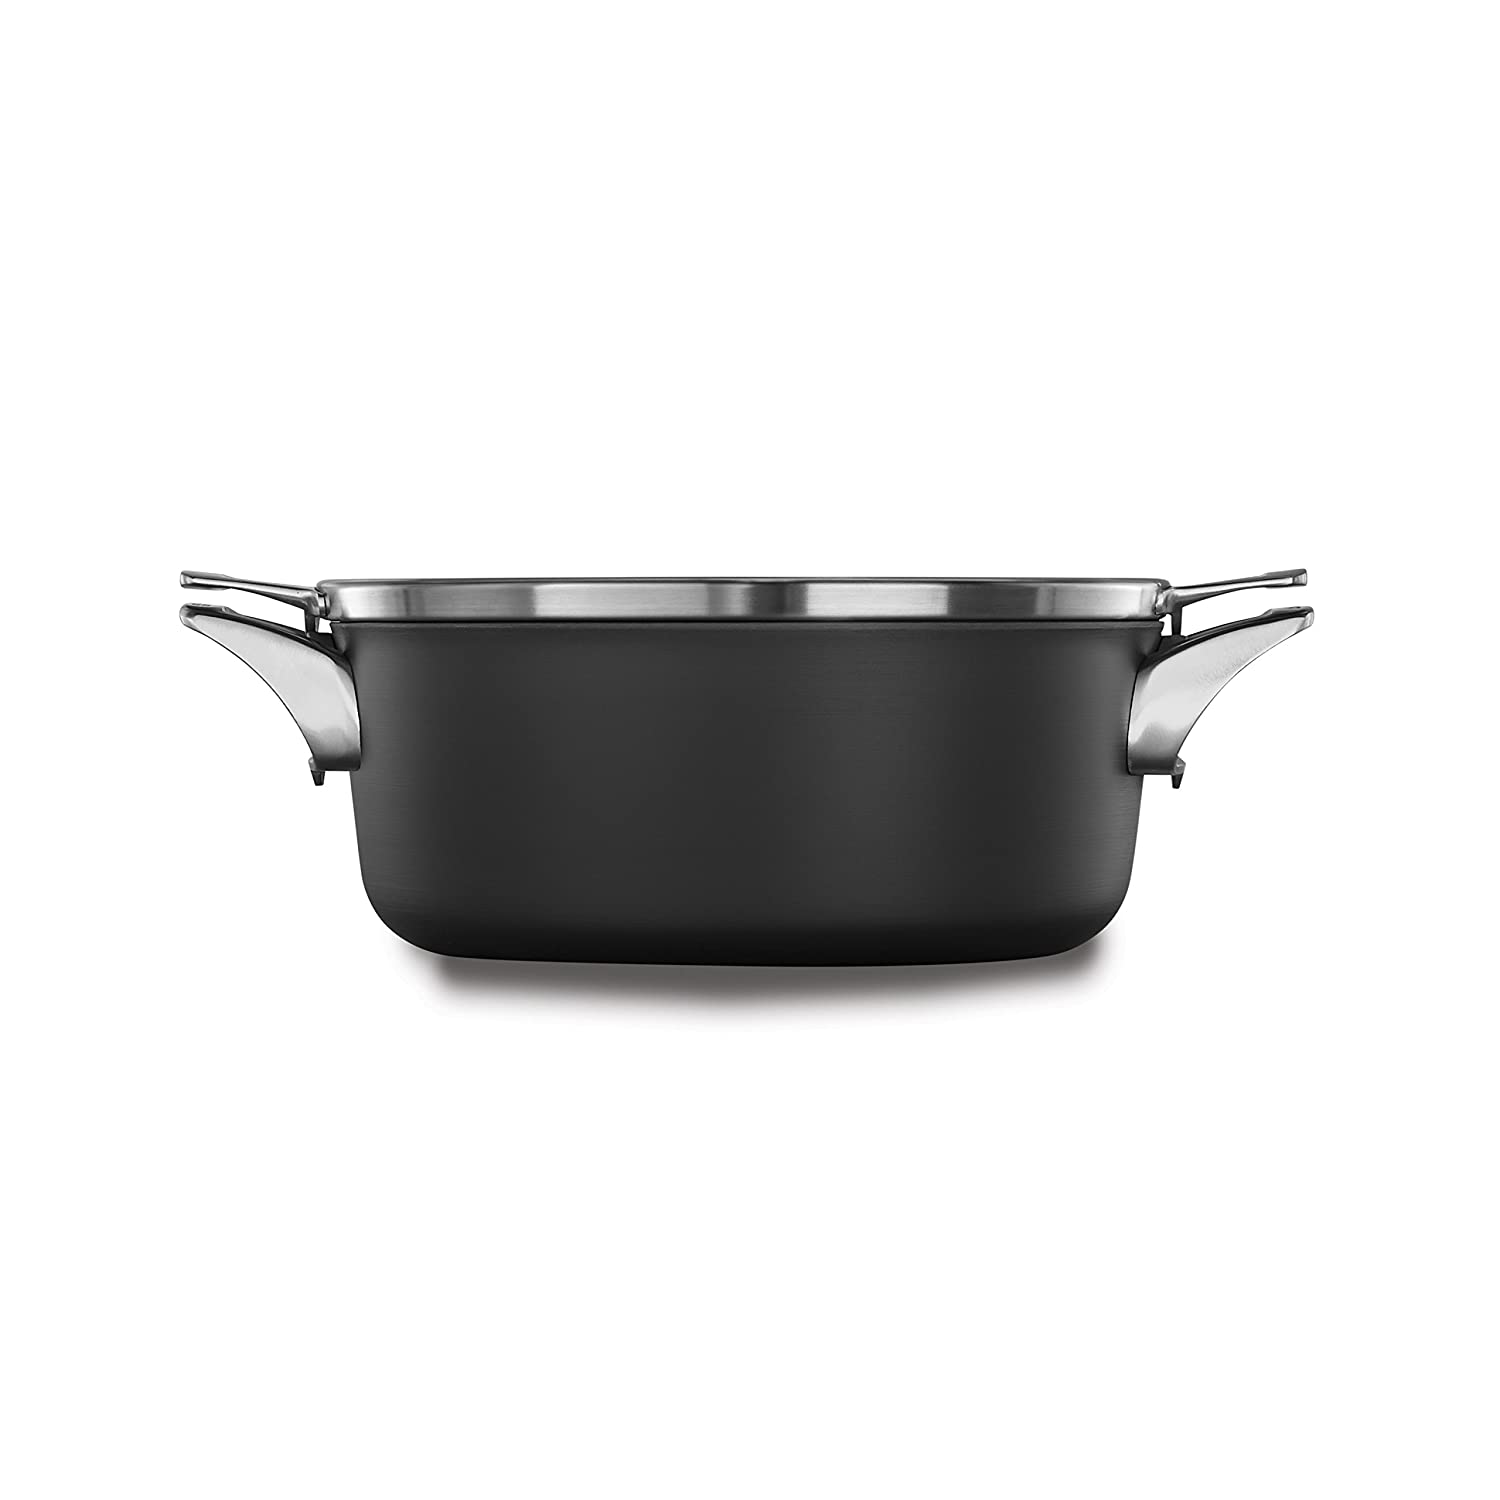 Calphalon Premier Space Saving Nonstick 5qt Dutch Oven with Cover